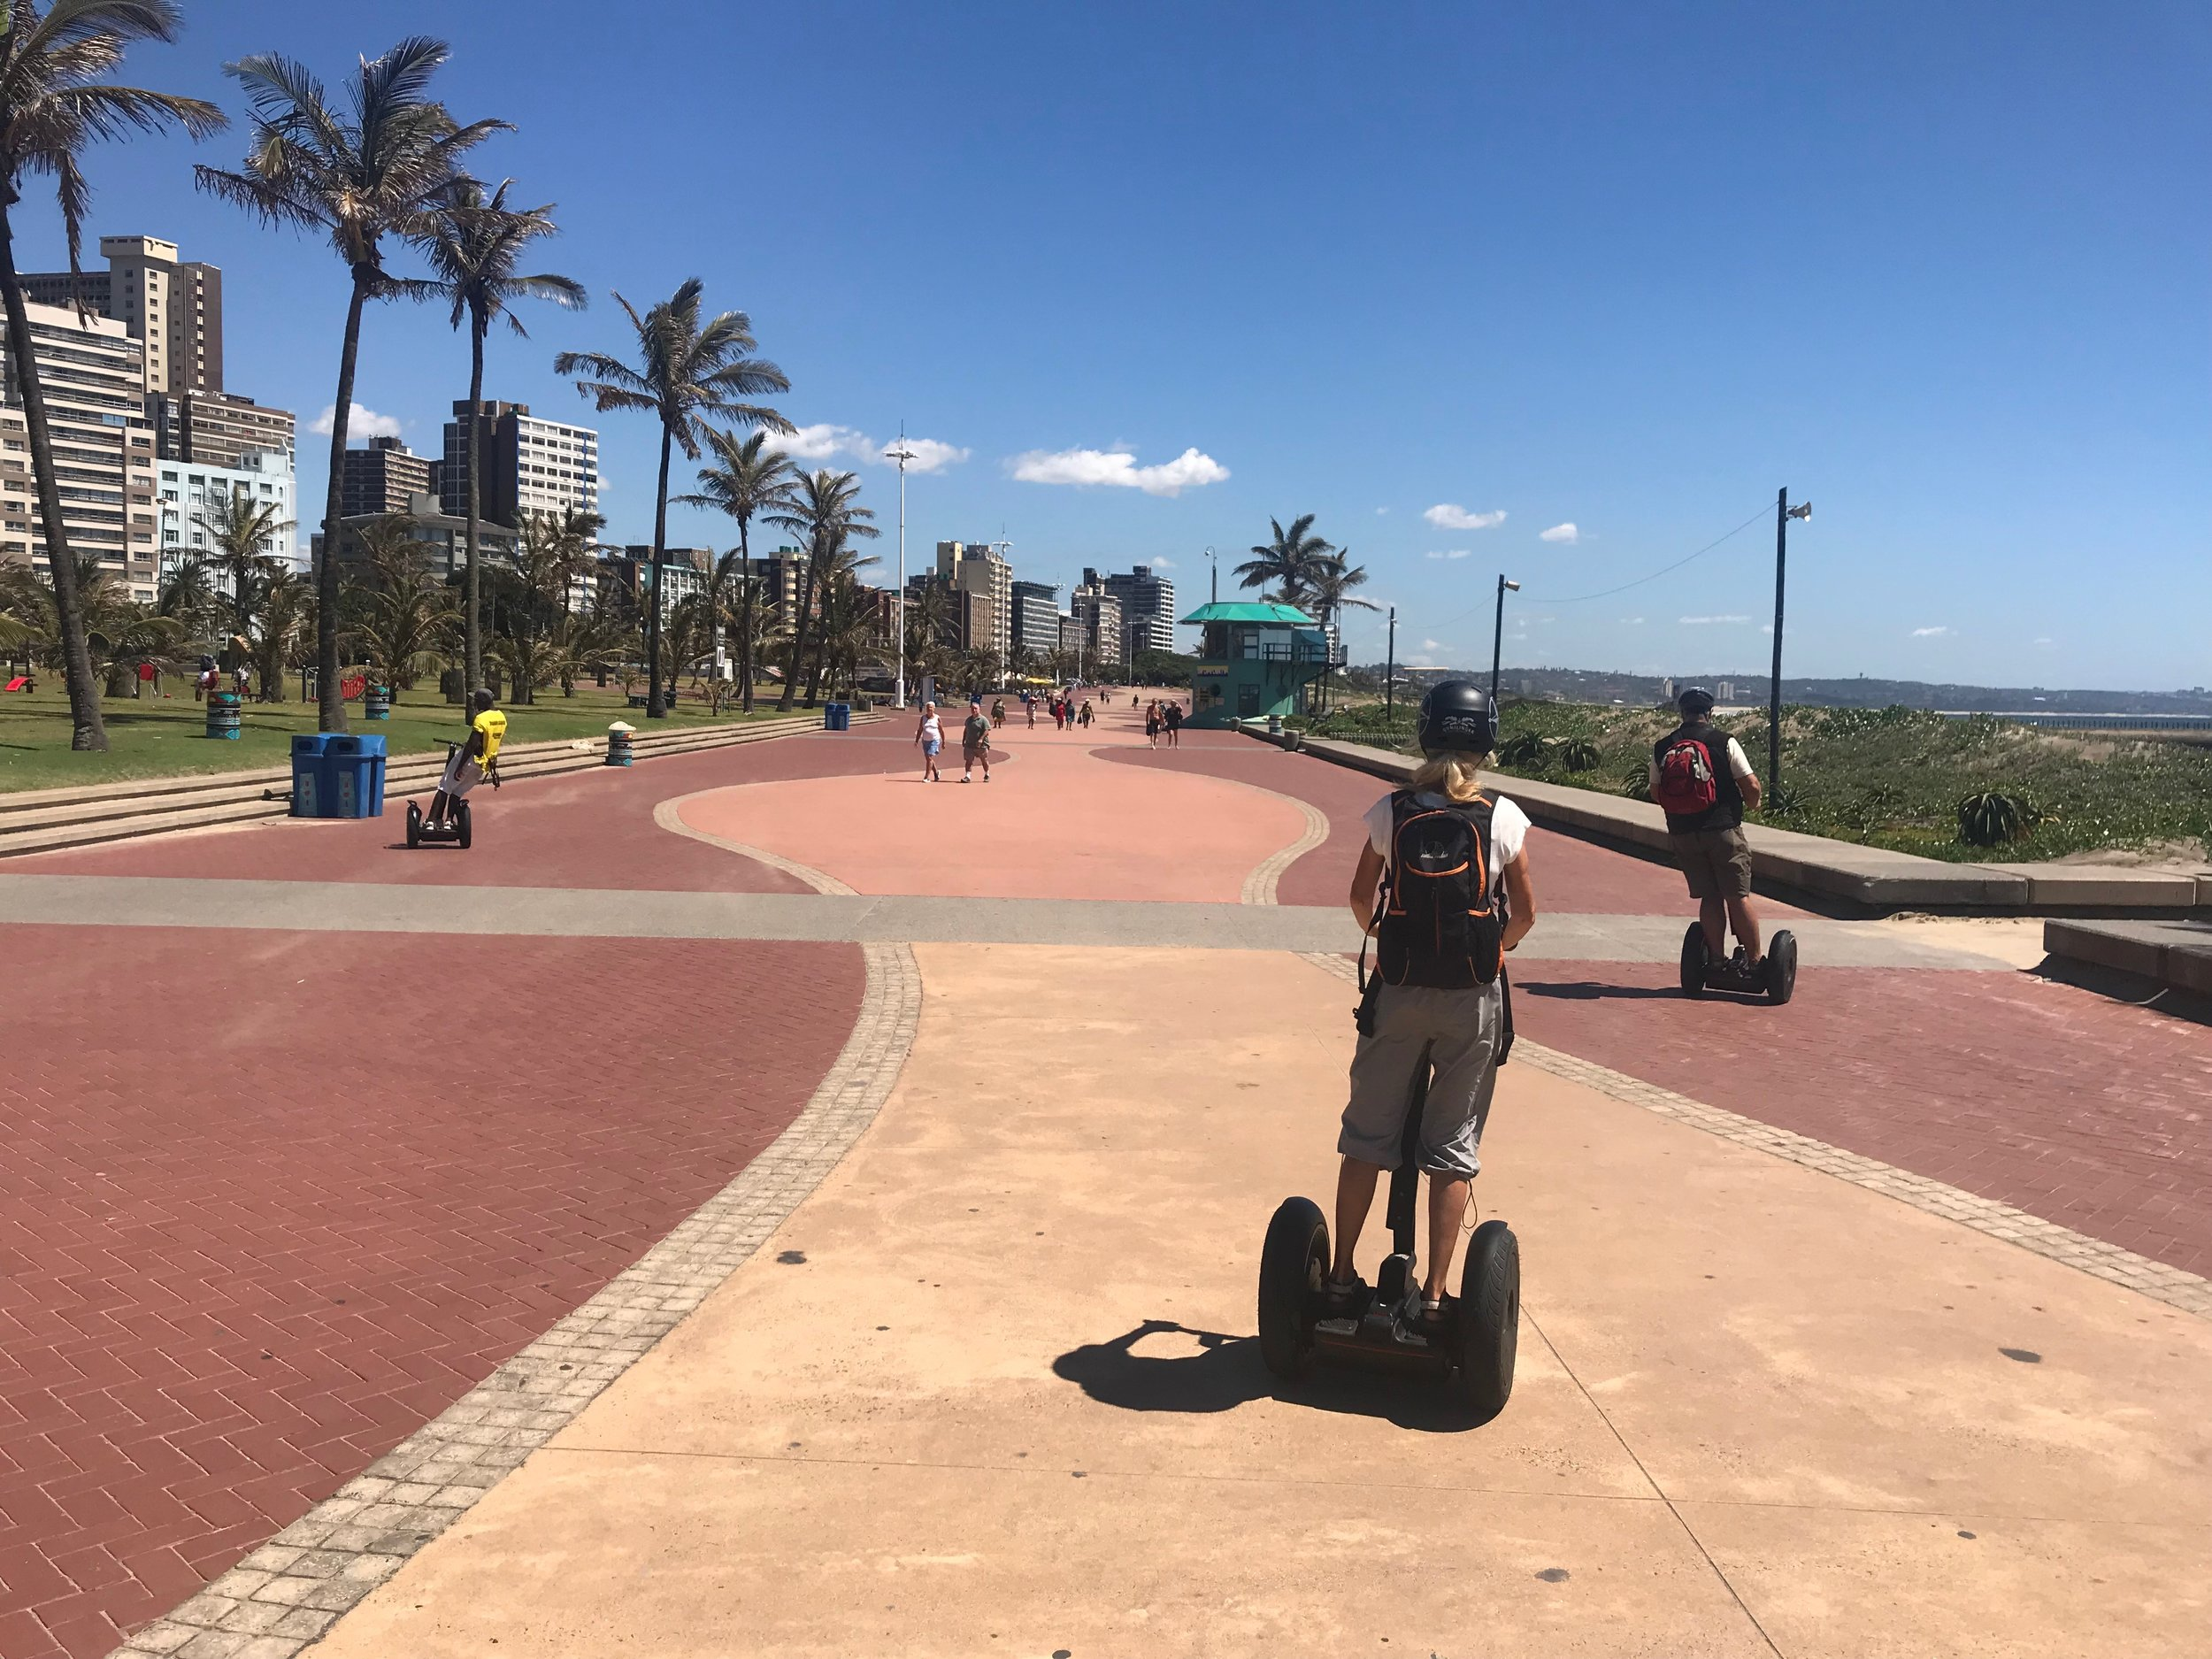 Segway on the Boardwalk